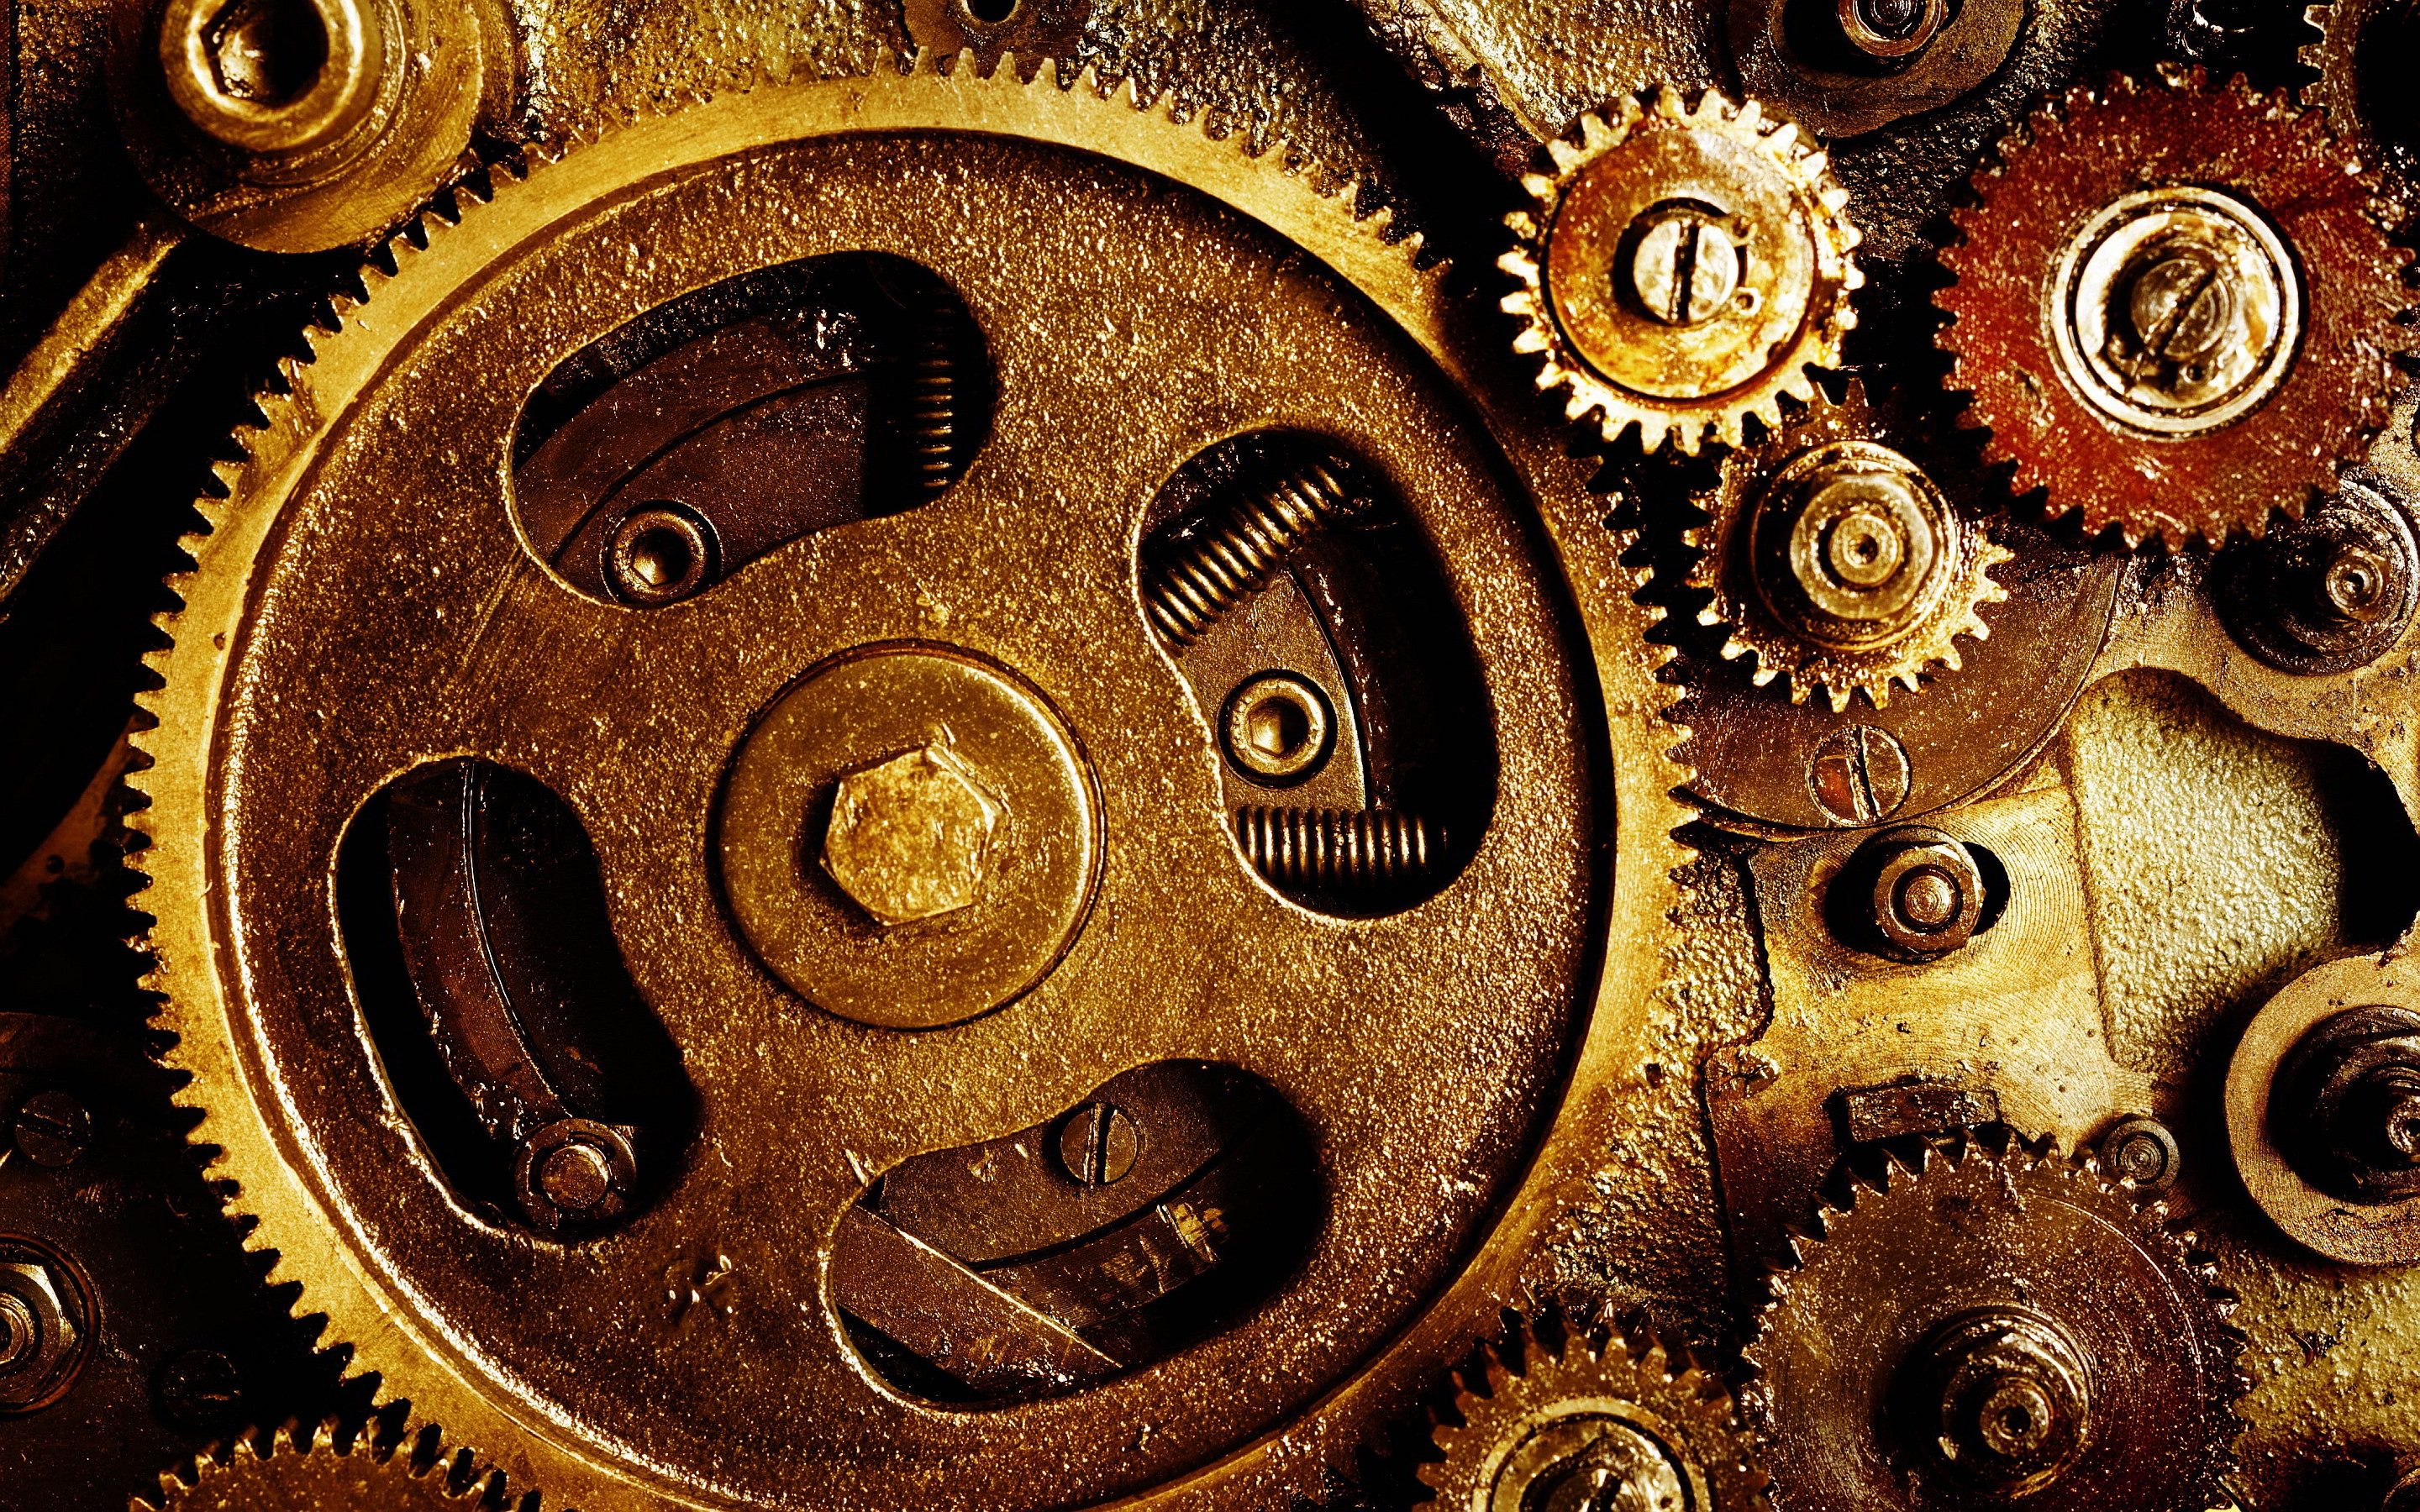 Gears mechanism